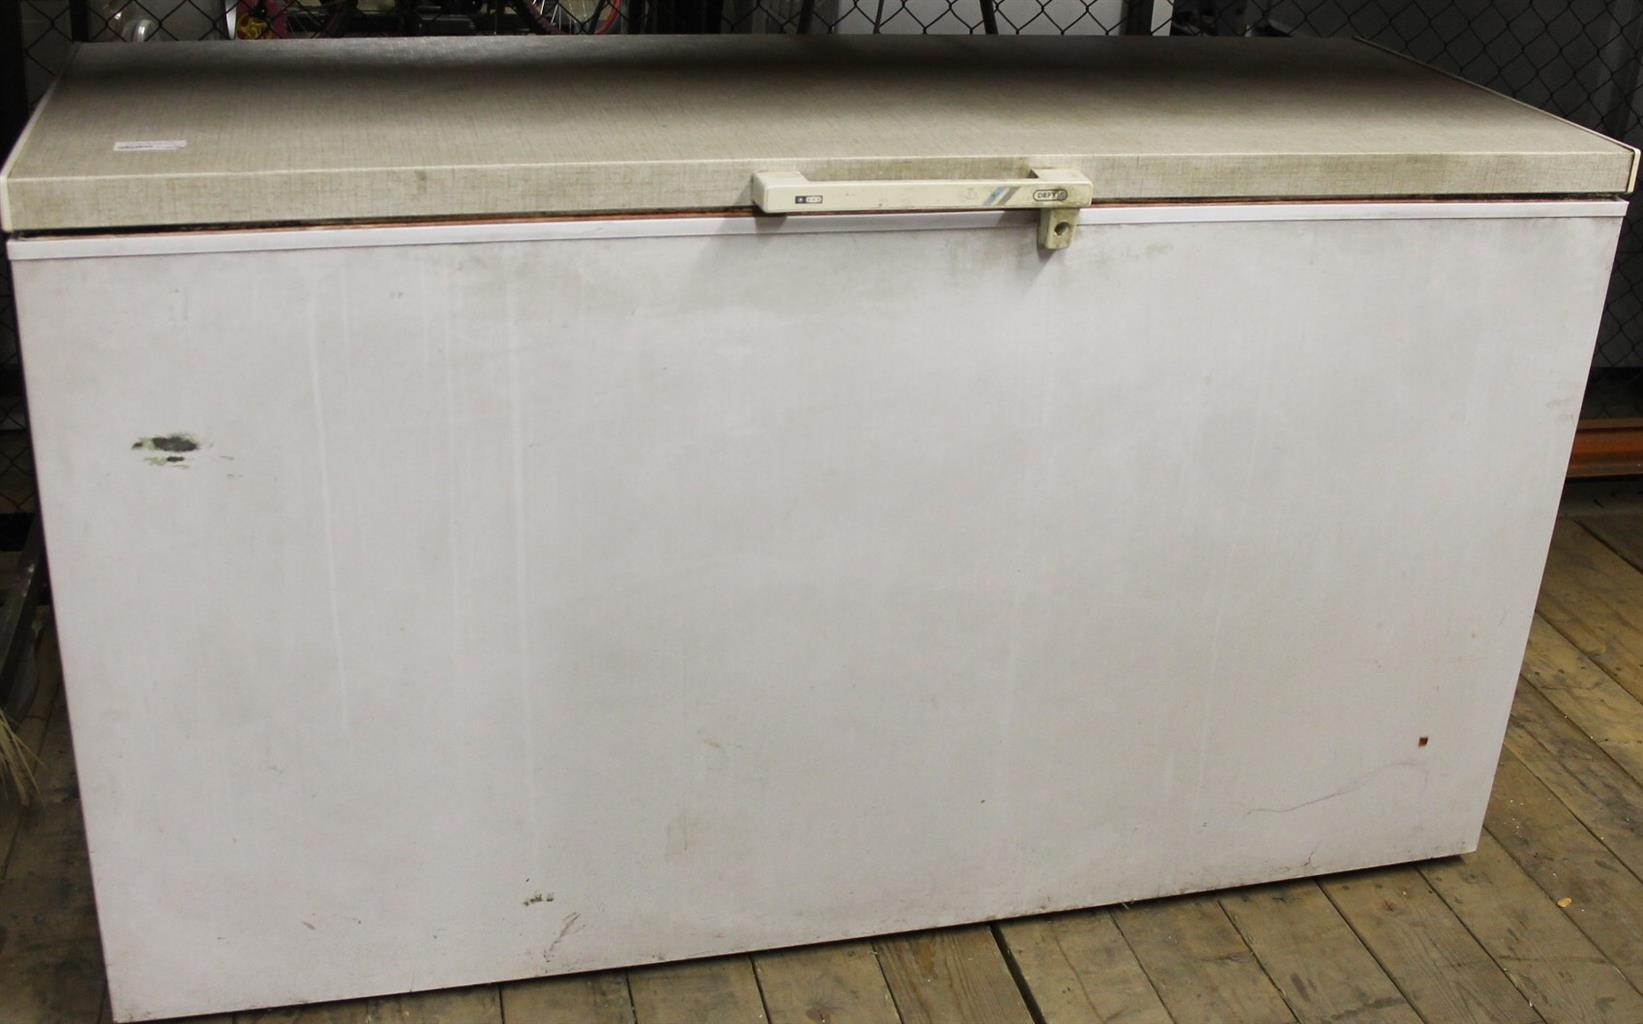 White deep freezer S027185a #Rosettenvillepawnshop